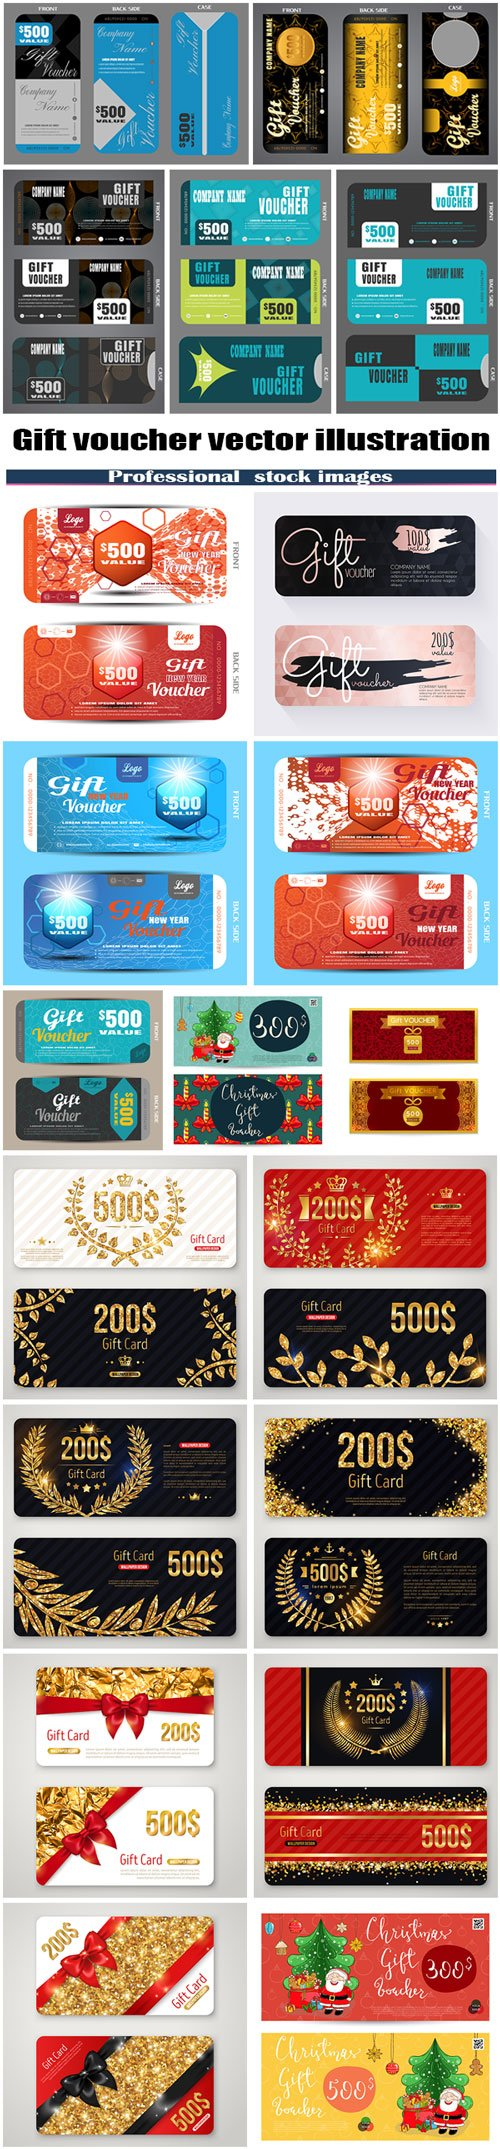 Gift voucher vector illustration